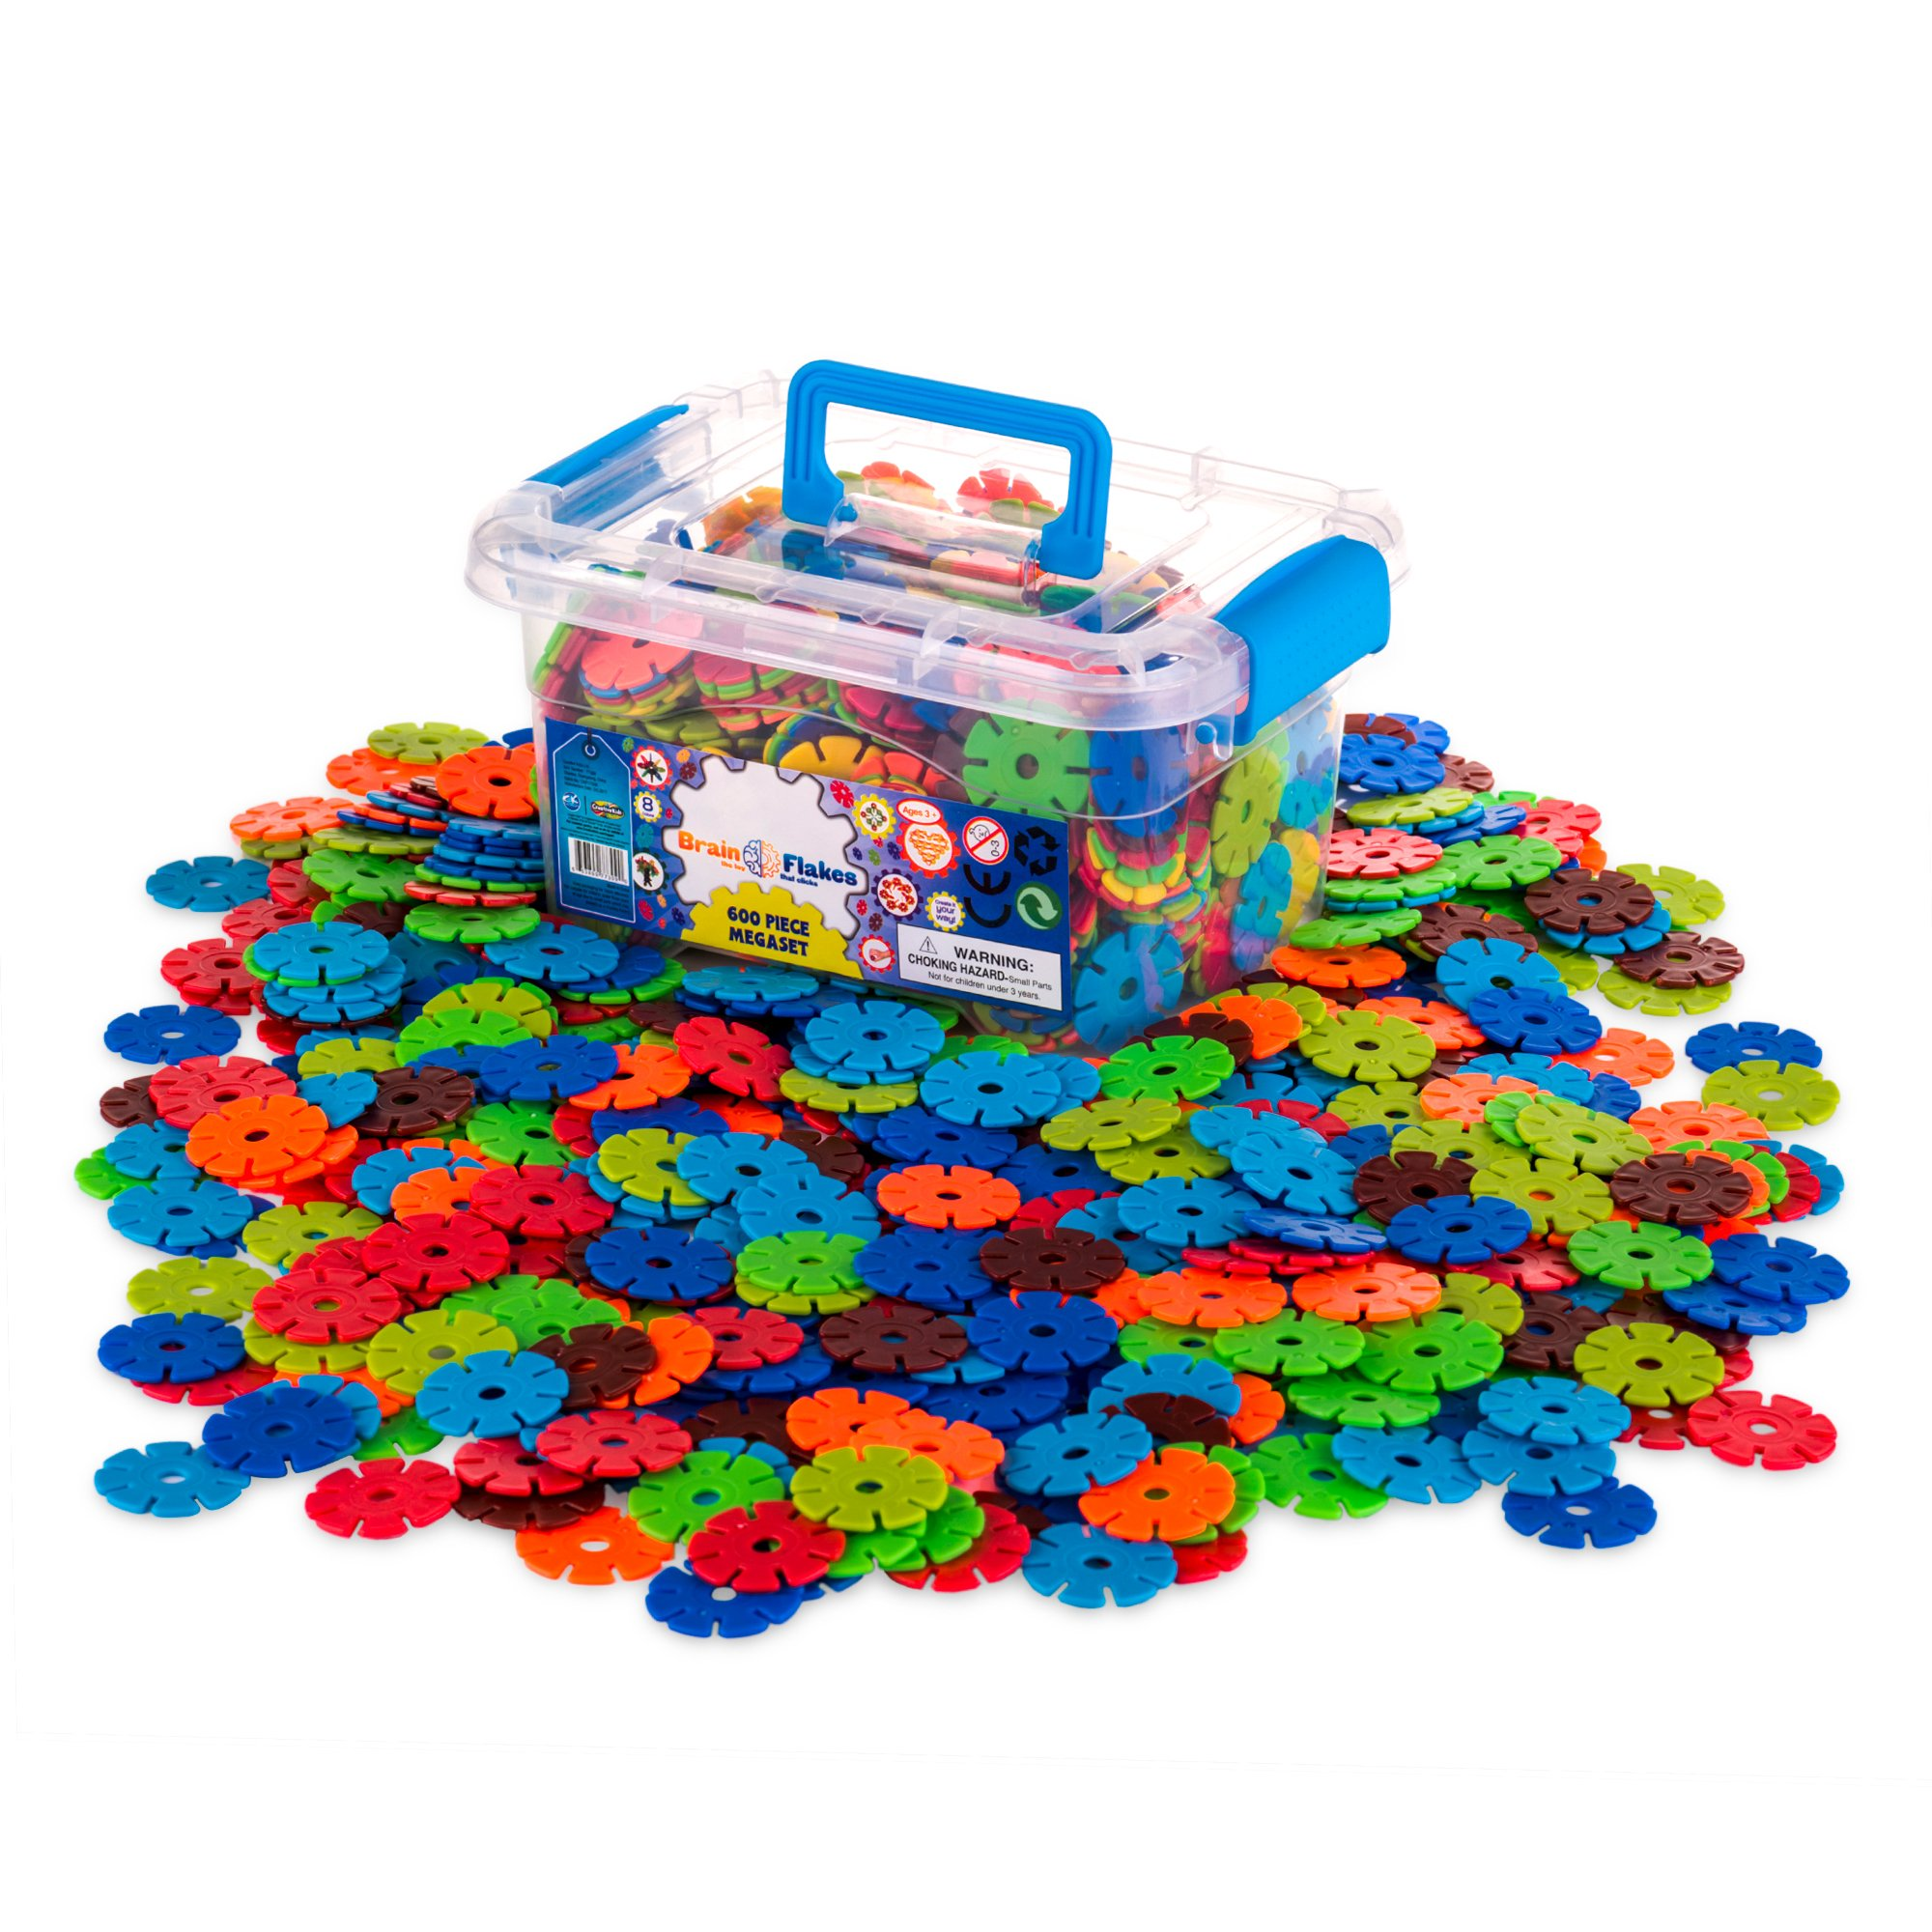 Creative Kids Flakes - 600 Piece Interlocking Plastic Disc Set for Fun, Creative Building - Educational STEM Construction Toy for Boys & Girls - Non Toxic, Ages 3 & Up (tub colors may vary)